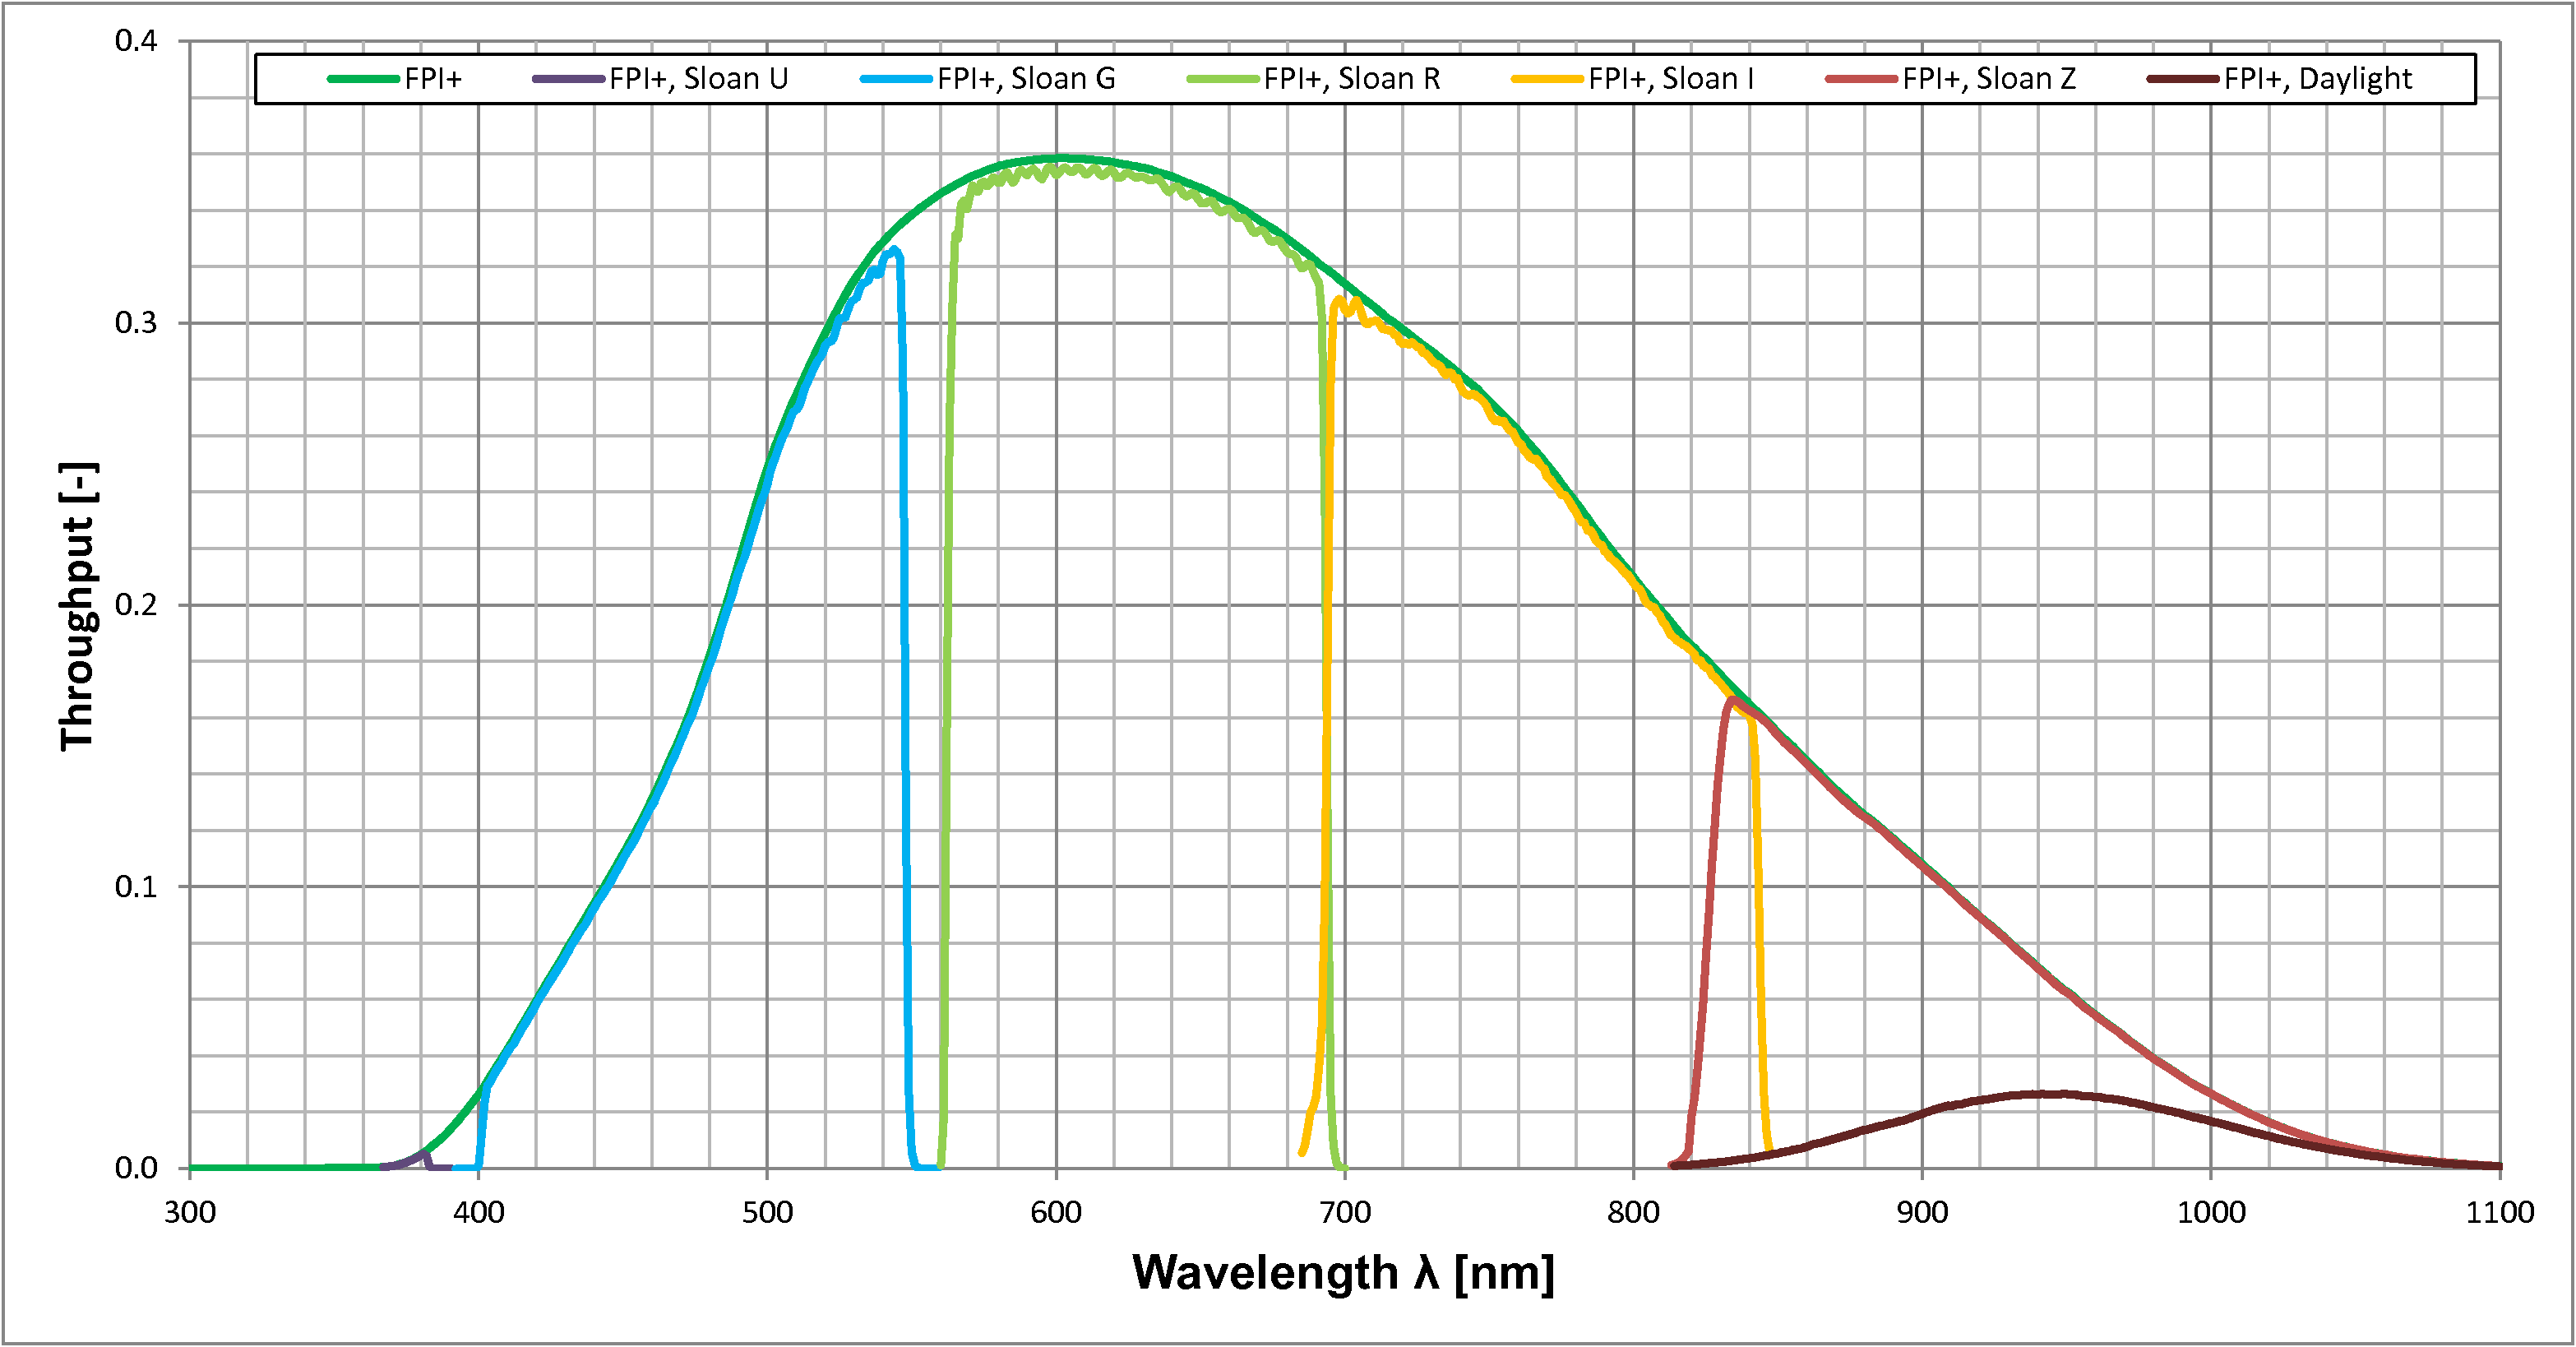 Total system throughput for Sloan filters, the Schott RG1000 filter and the OPEN FPI+ configuration